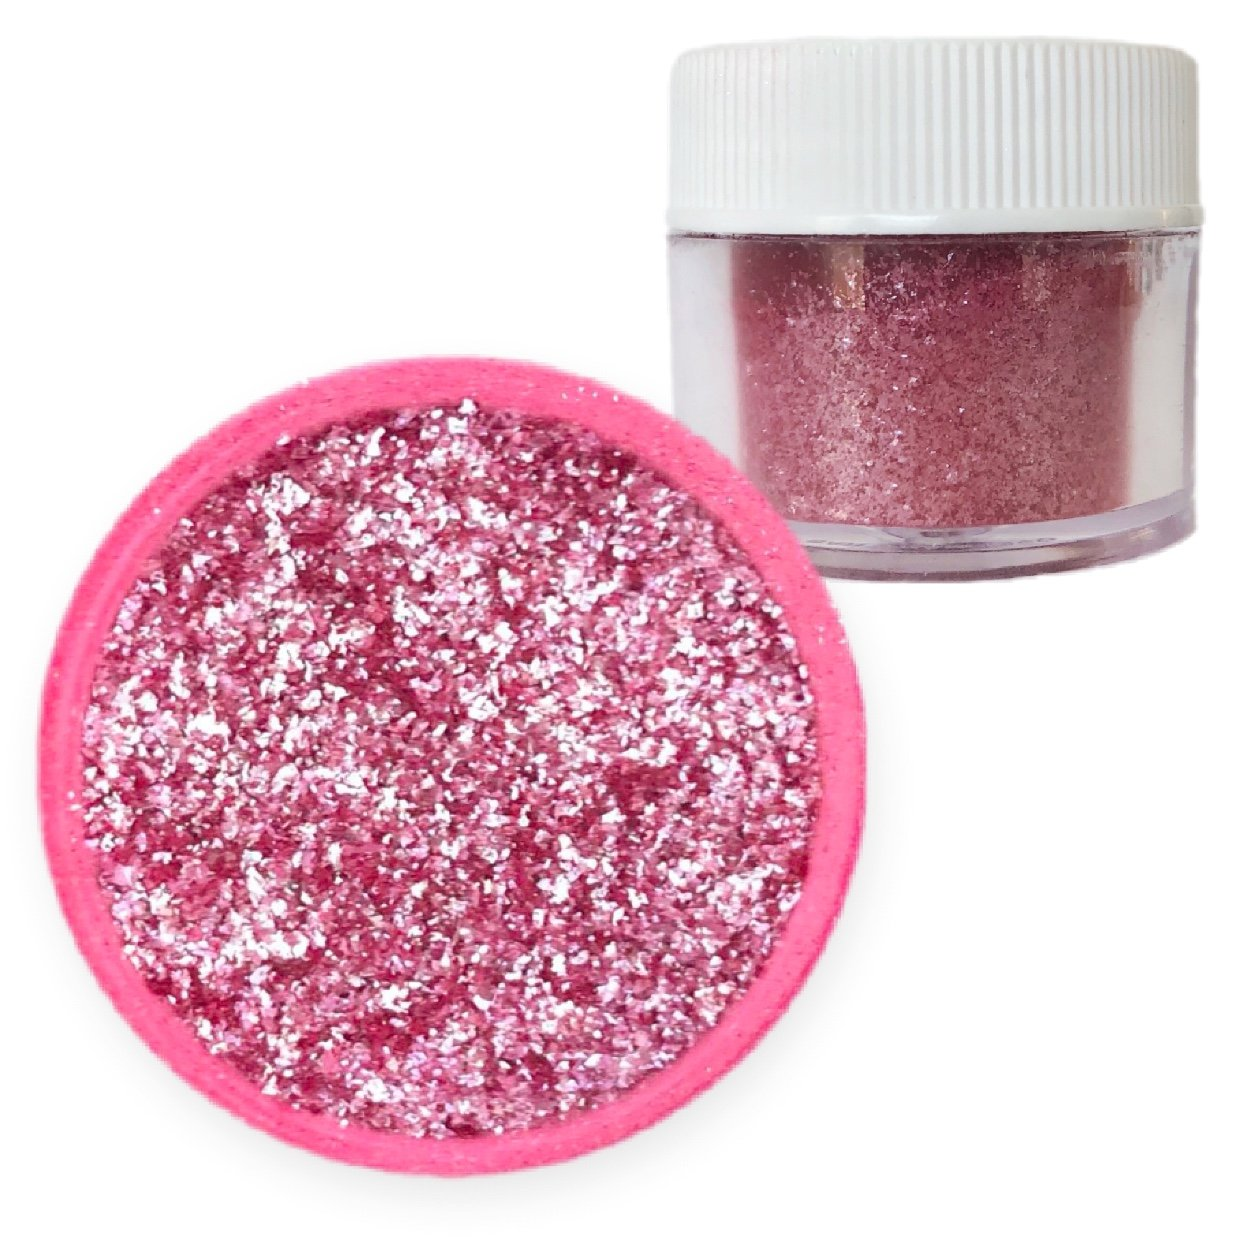 Bakell Red Food Grade Tinker Dust 4g Decorating Pearl Edible Glitter